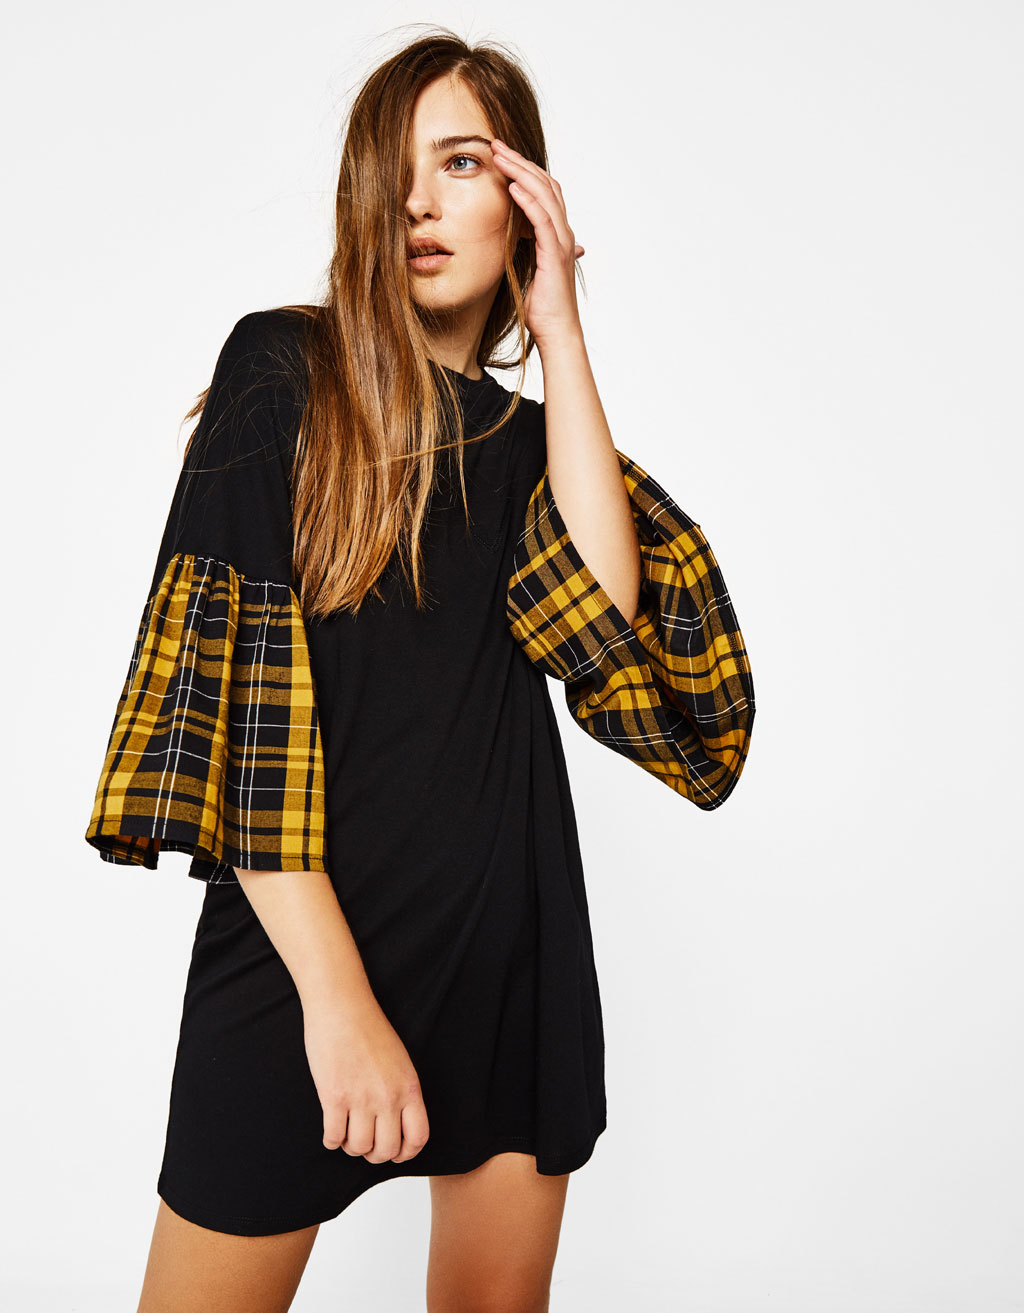 Oversized T-shirt with ruffled sleeves